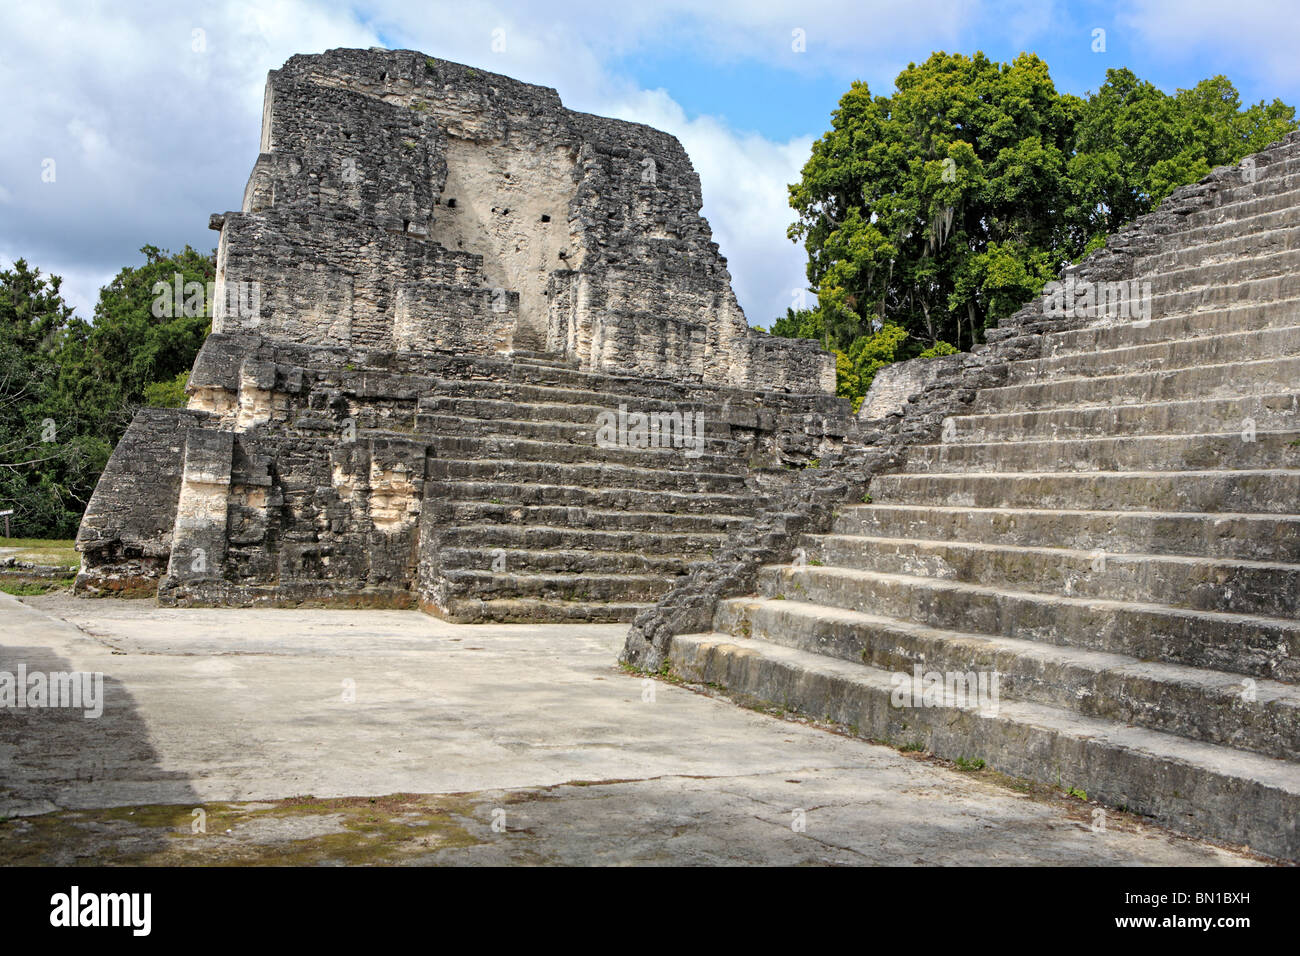 North Acropolis, Maya ruins of Tikal, near Flores, Guatemala - Stock Image